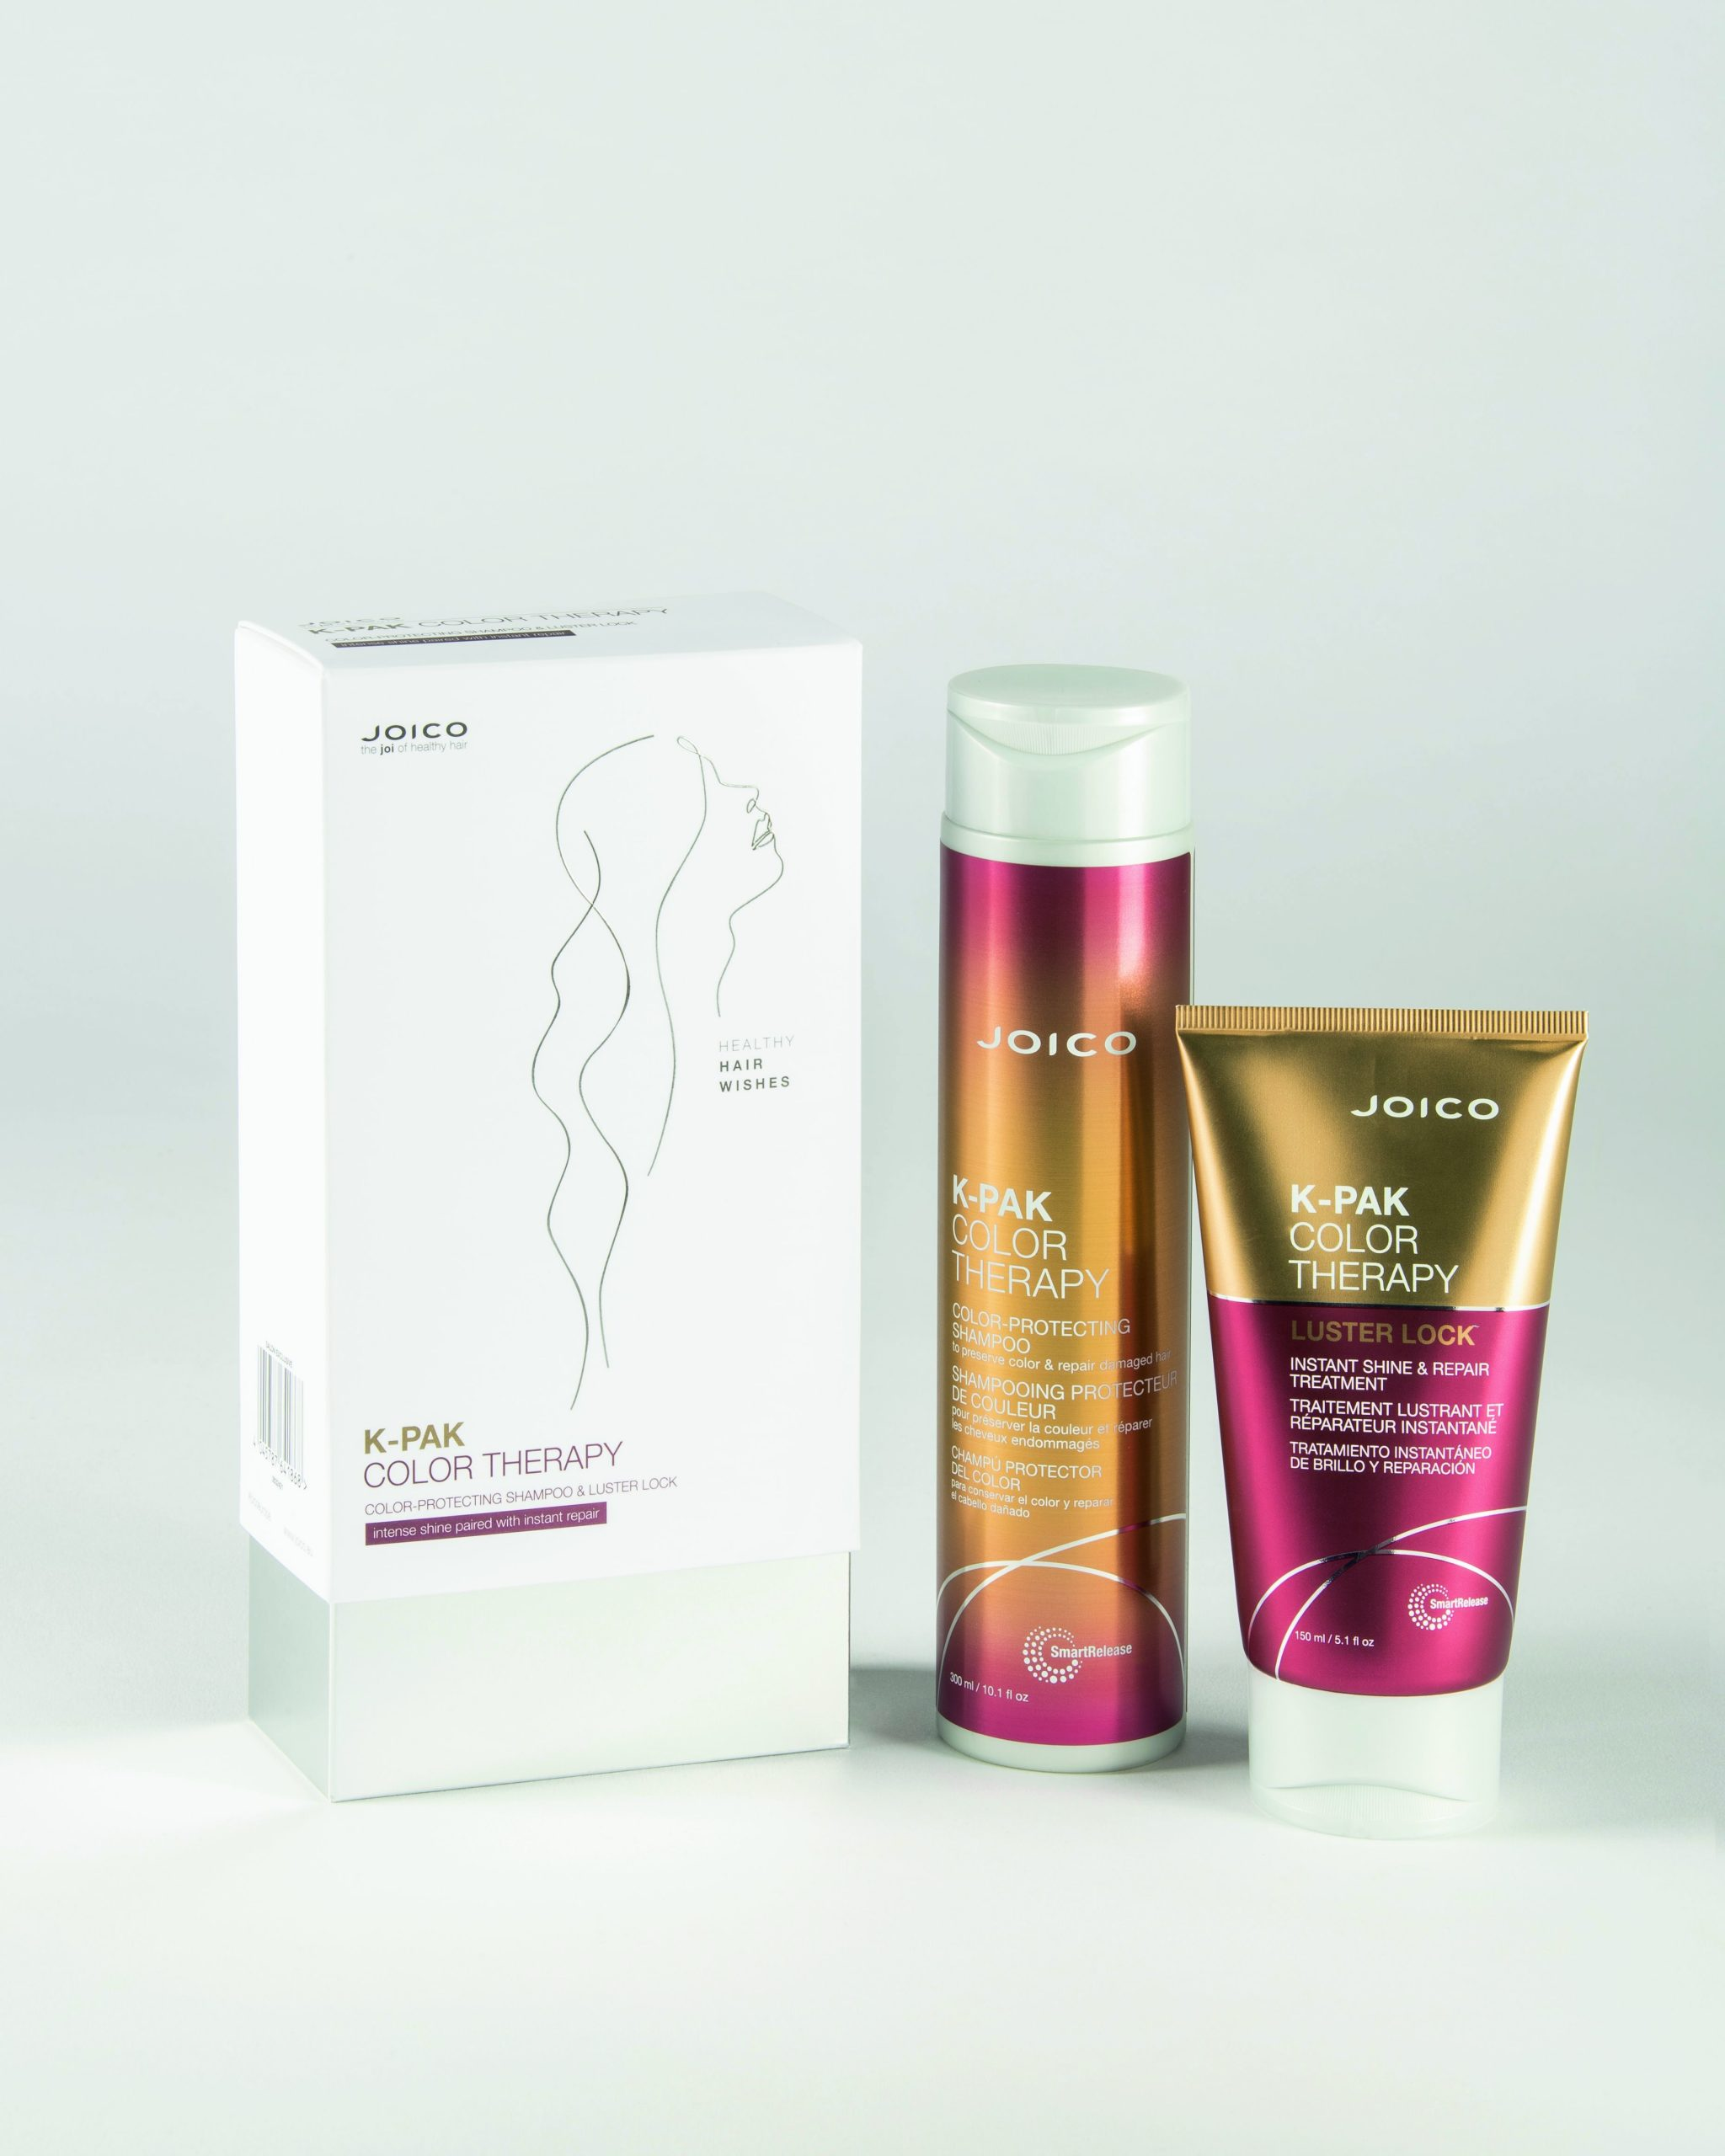 Coffret Color Therapy Joico (Shampoing+Luster)